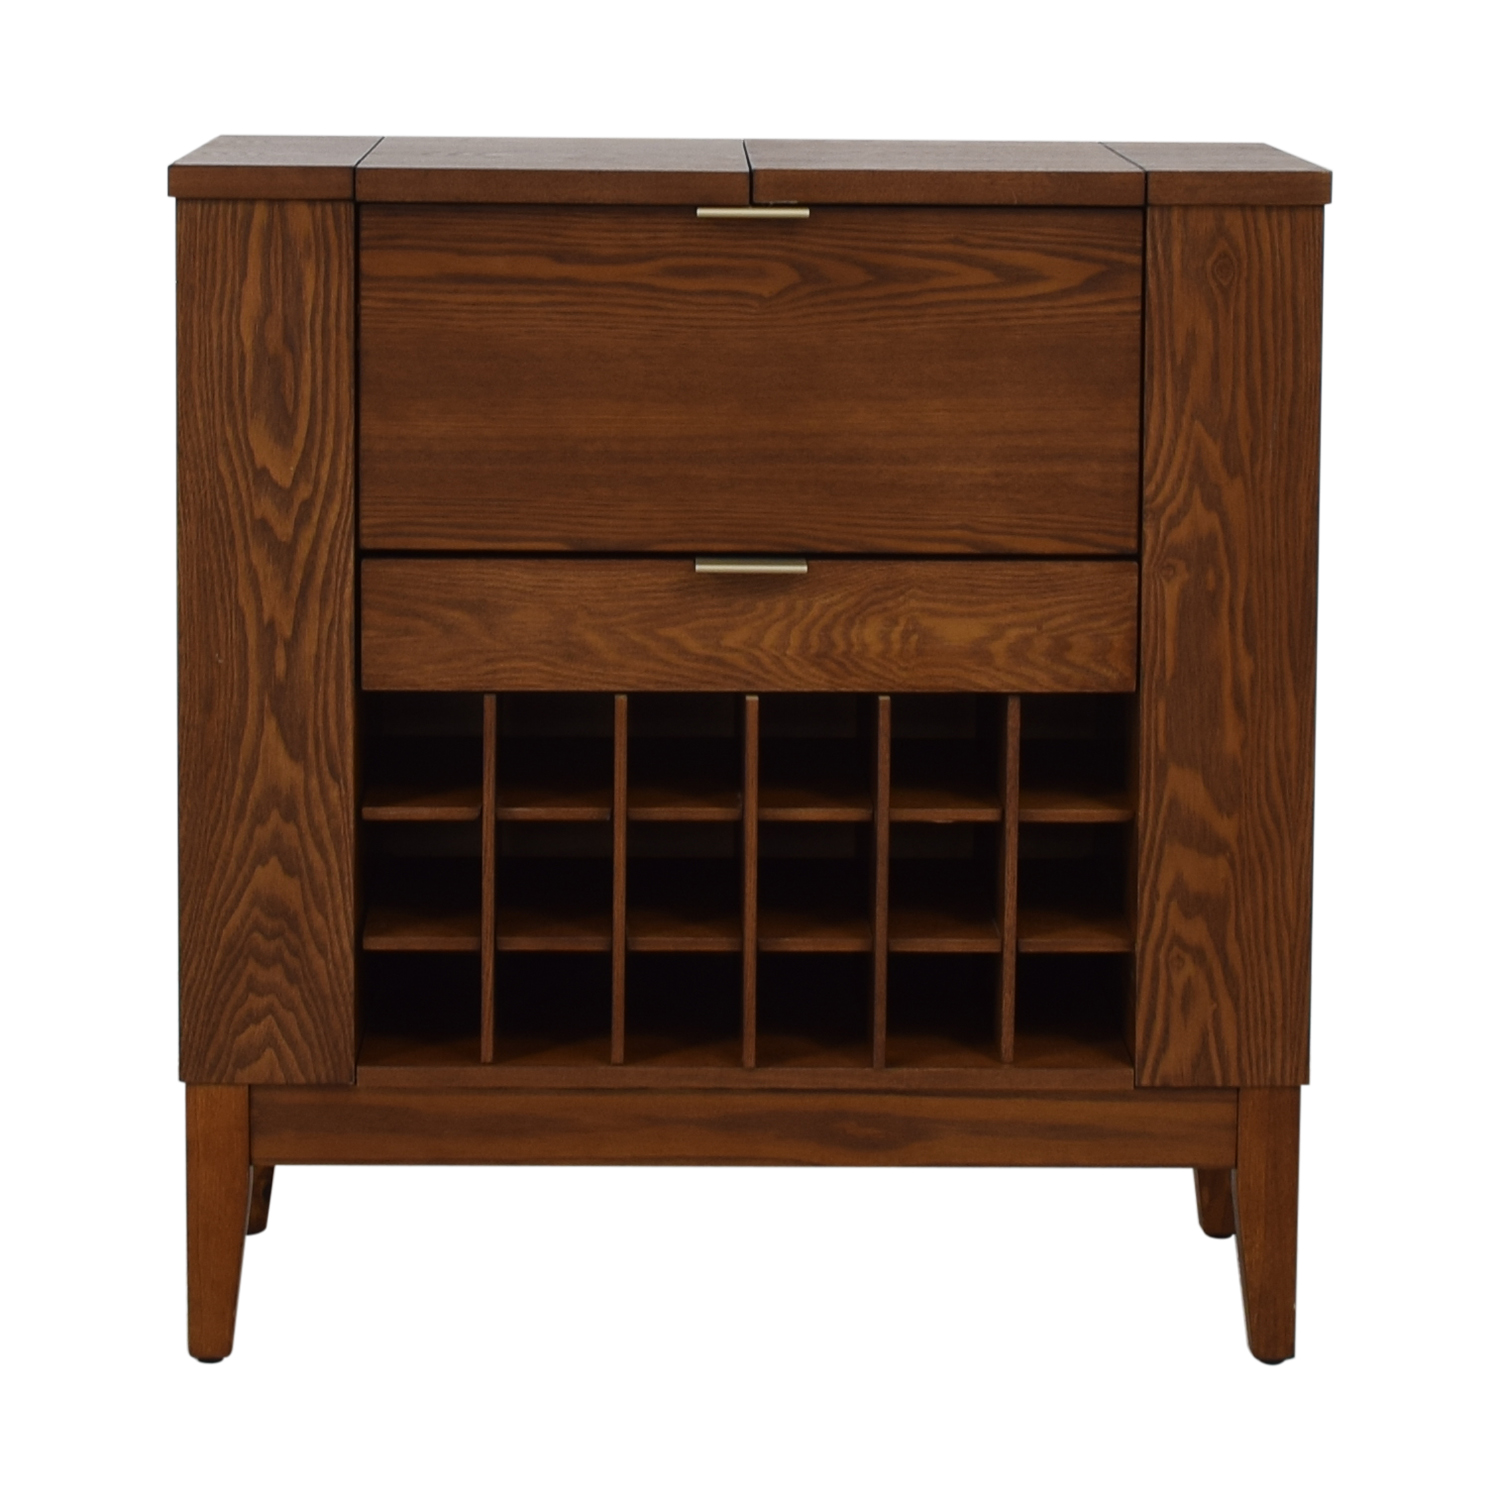 Crate & Barrel Crate & Barrel Parker Spirits Cabinet price